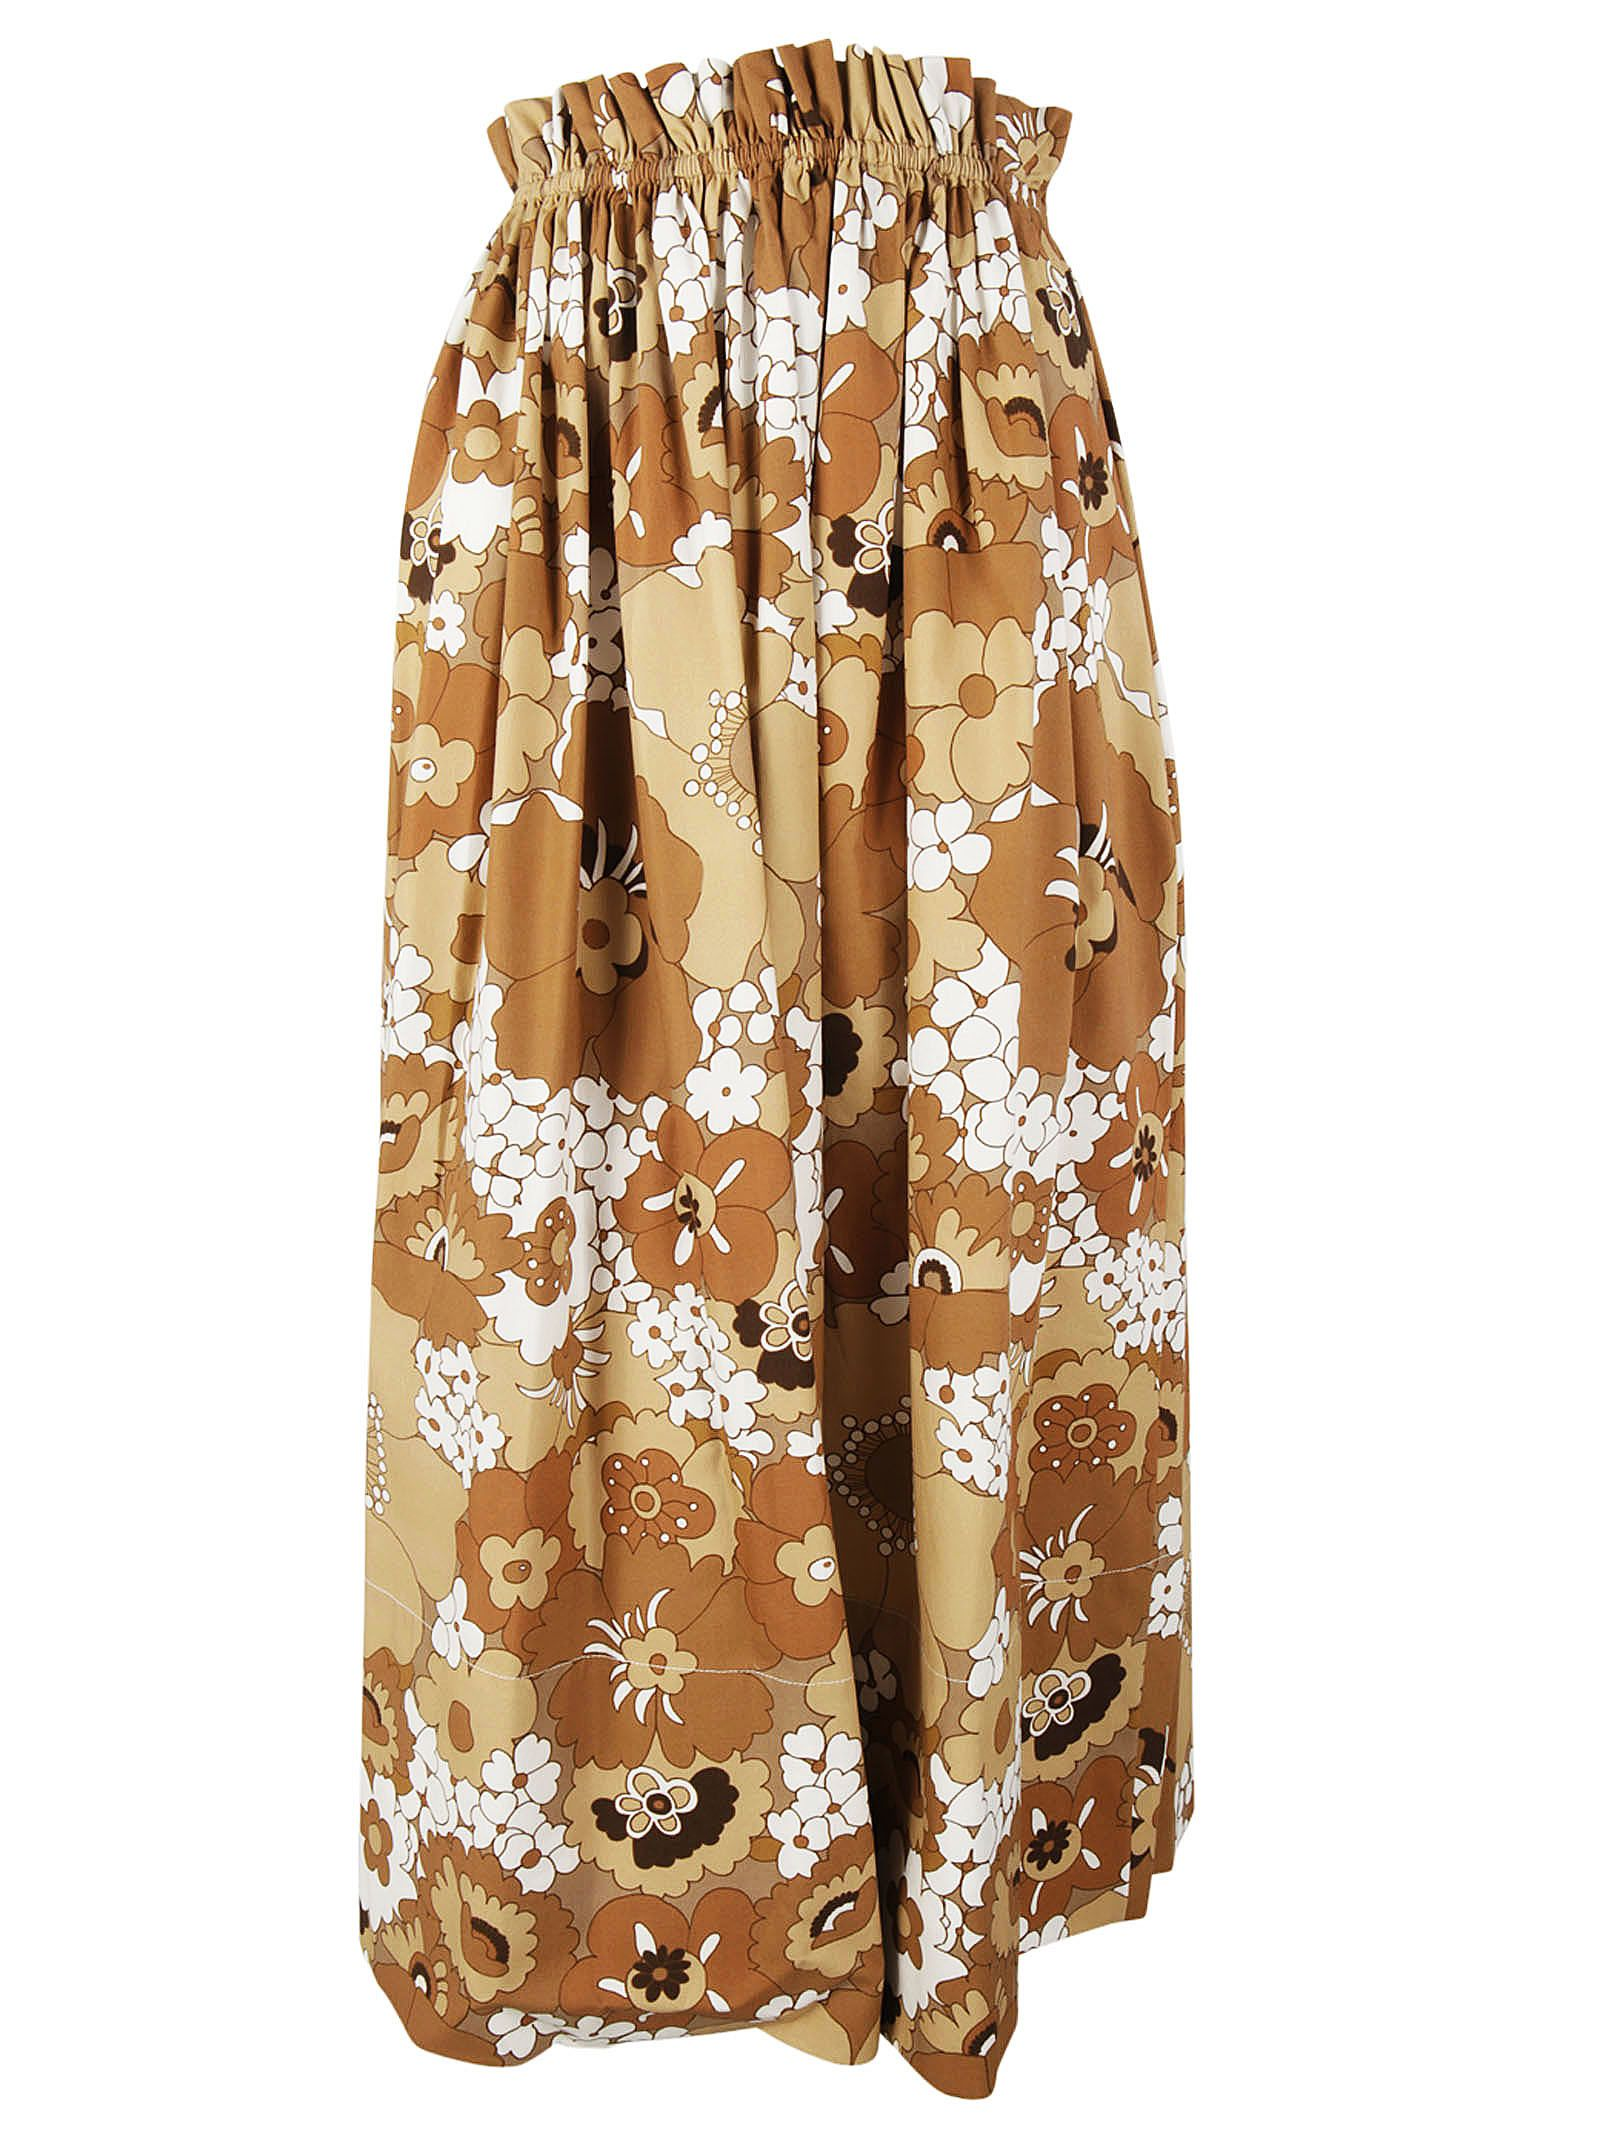 CHLOÉ Printed Cotton Midi Skirt in Multicolor Lrowe